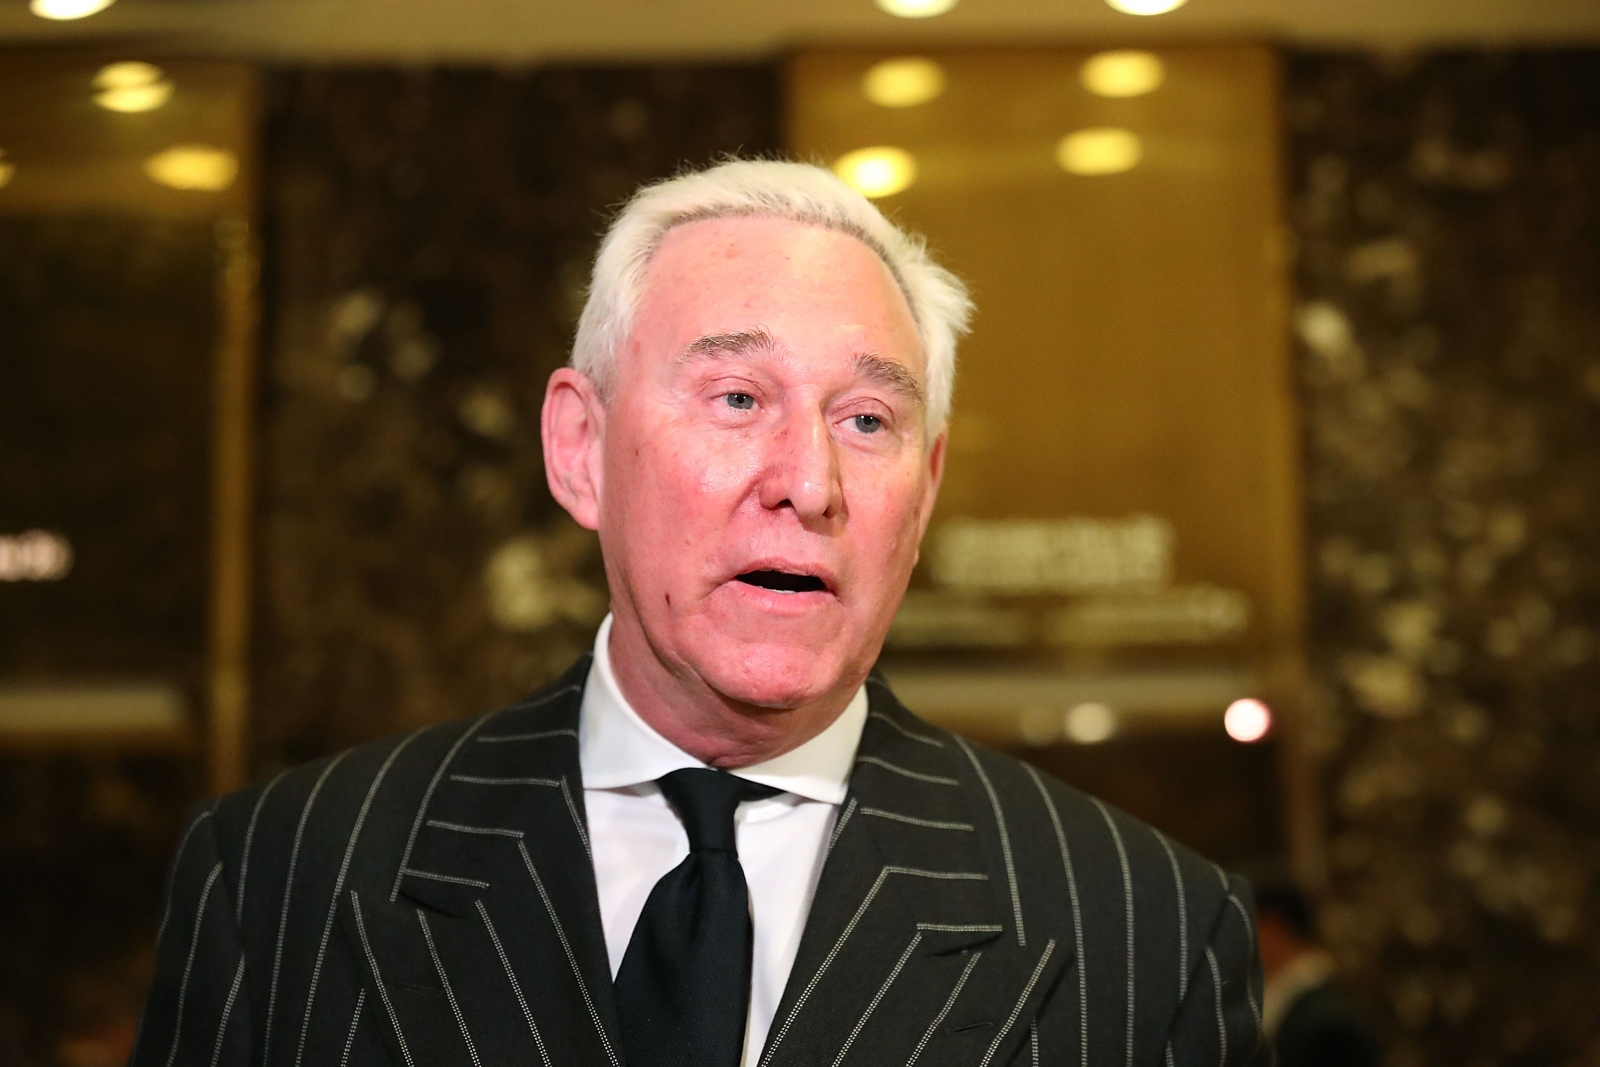 Trump adviser Roger Stone reacts to Comey congressional testimony